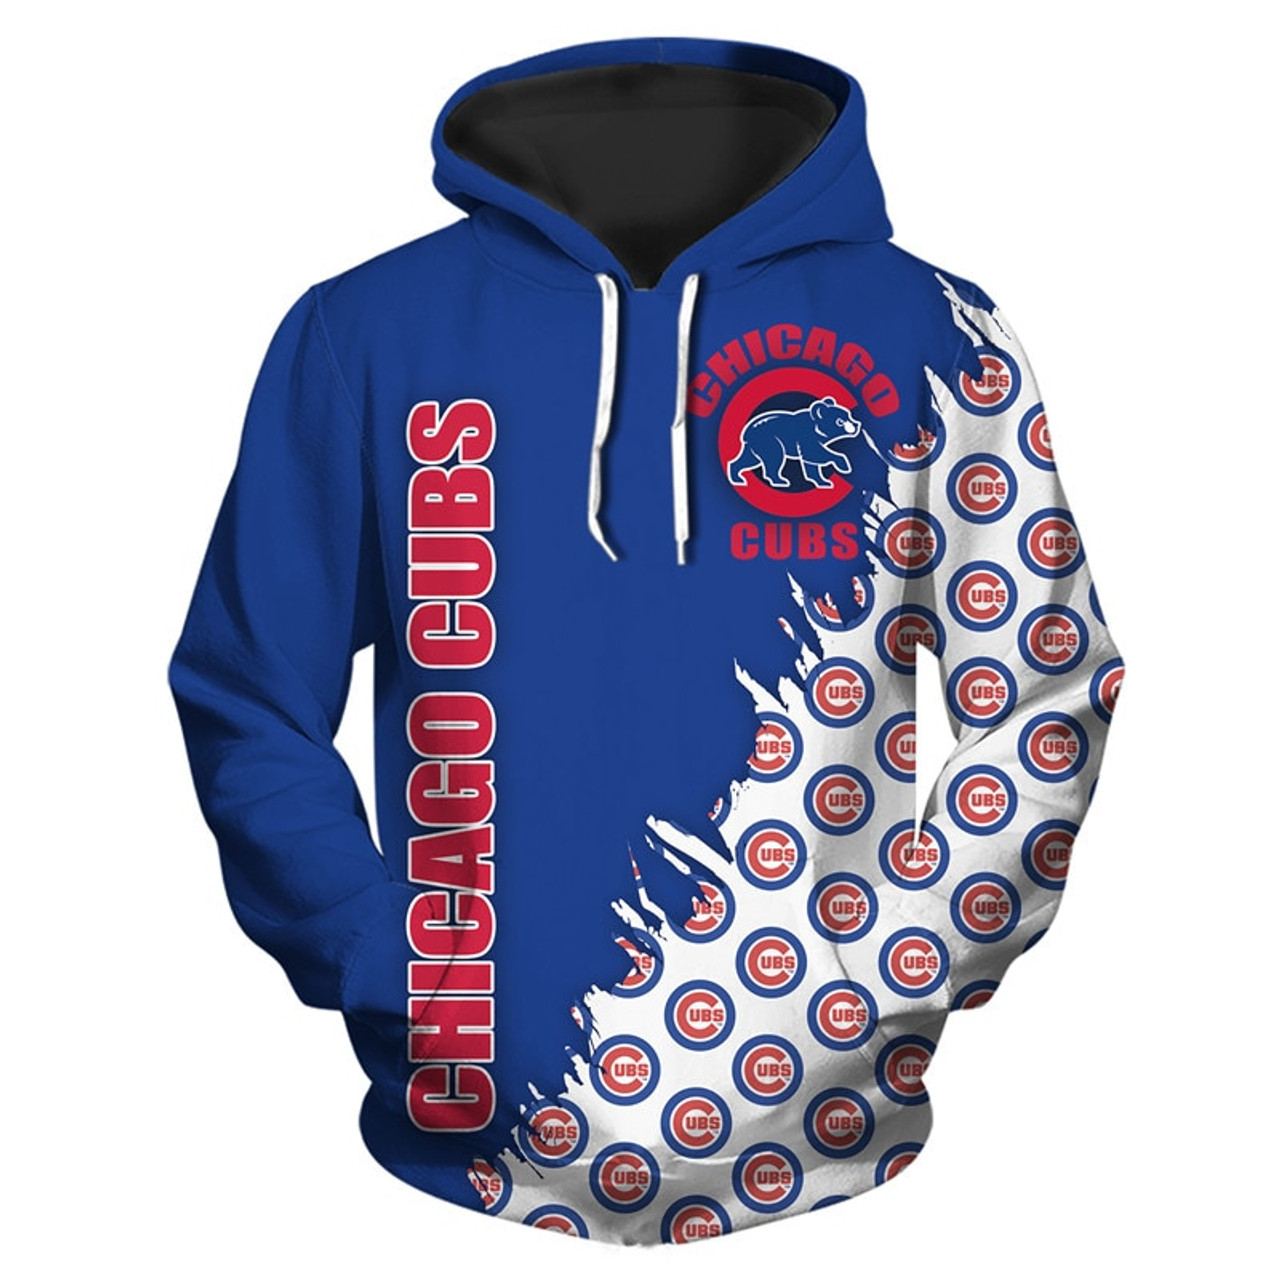 new arrival 777de db240 **(OFFICIALLY-LICENSED-M.L.B.CHICAGO-CUBS-TEAM-PULLOVER-HOODIES/NICE-CUSTOM-DETAILED-3D-GRAPHIC-PRINTED/PREMIUM-ALL-OVER-DOUBLE-SIDED-PRINT/OFFICIAL-C...